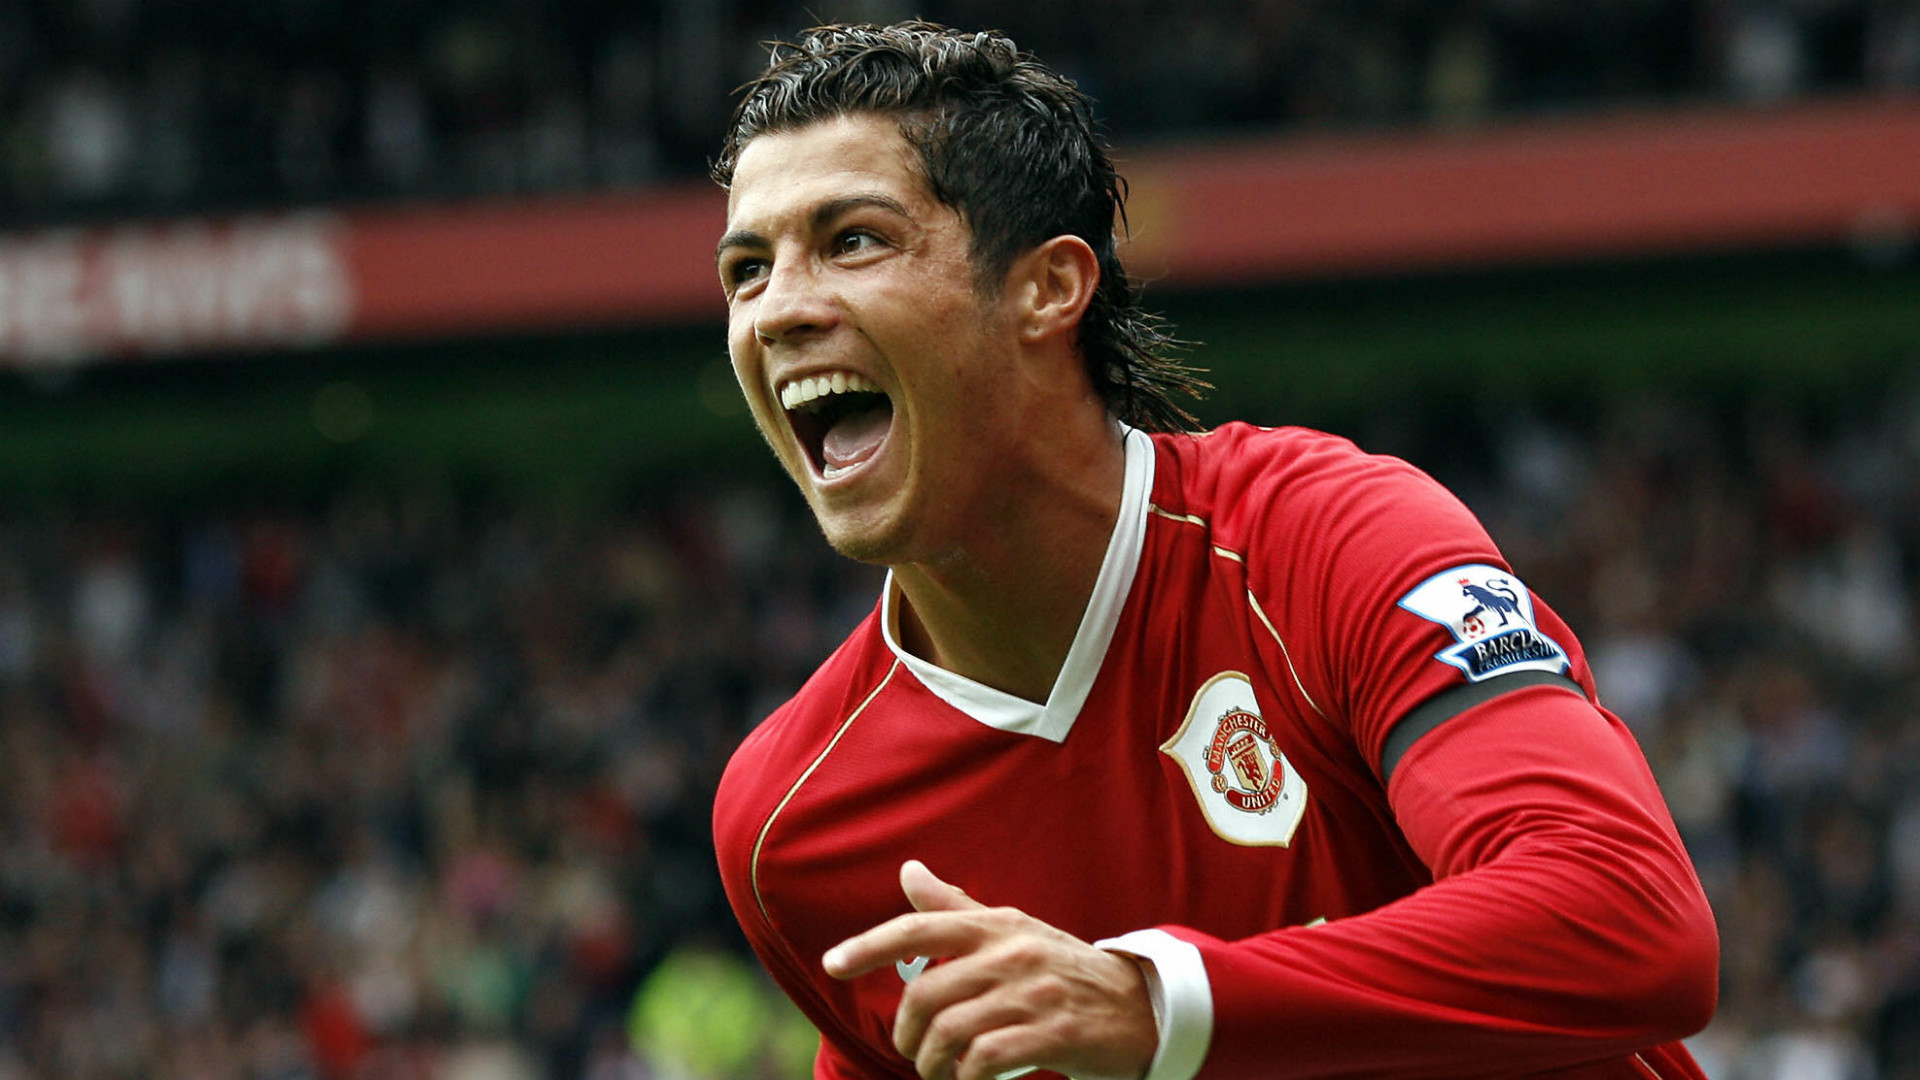 Diego Forlan claims Cristiano Ronaldo 'spent all day looking in the mirror' at Manchester United - Bóng Đá